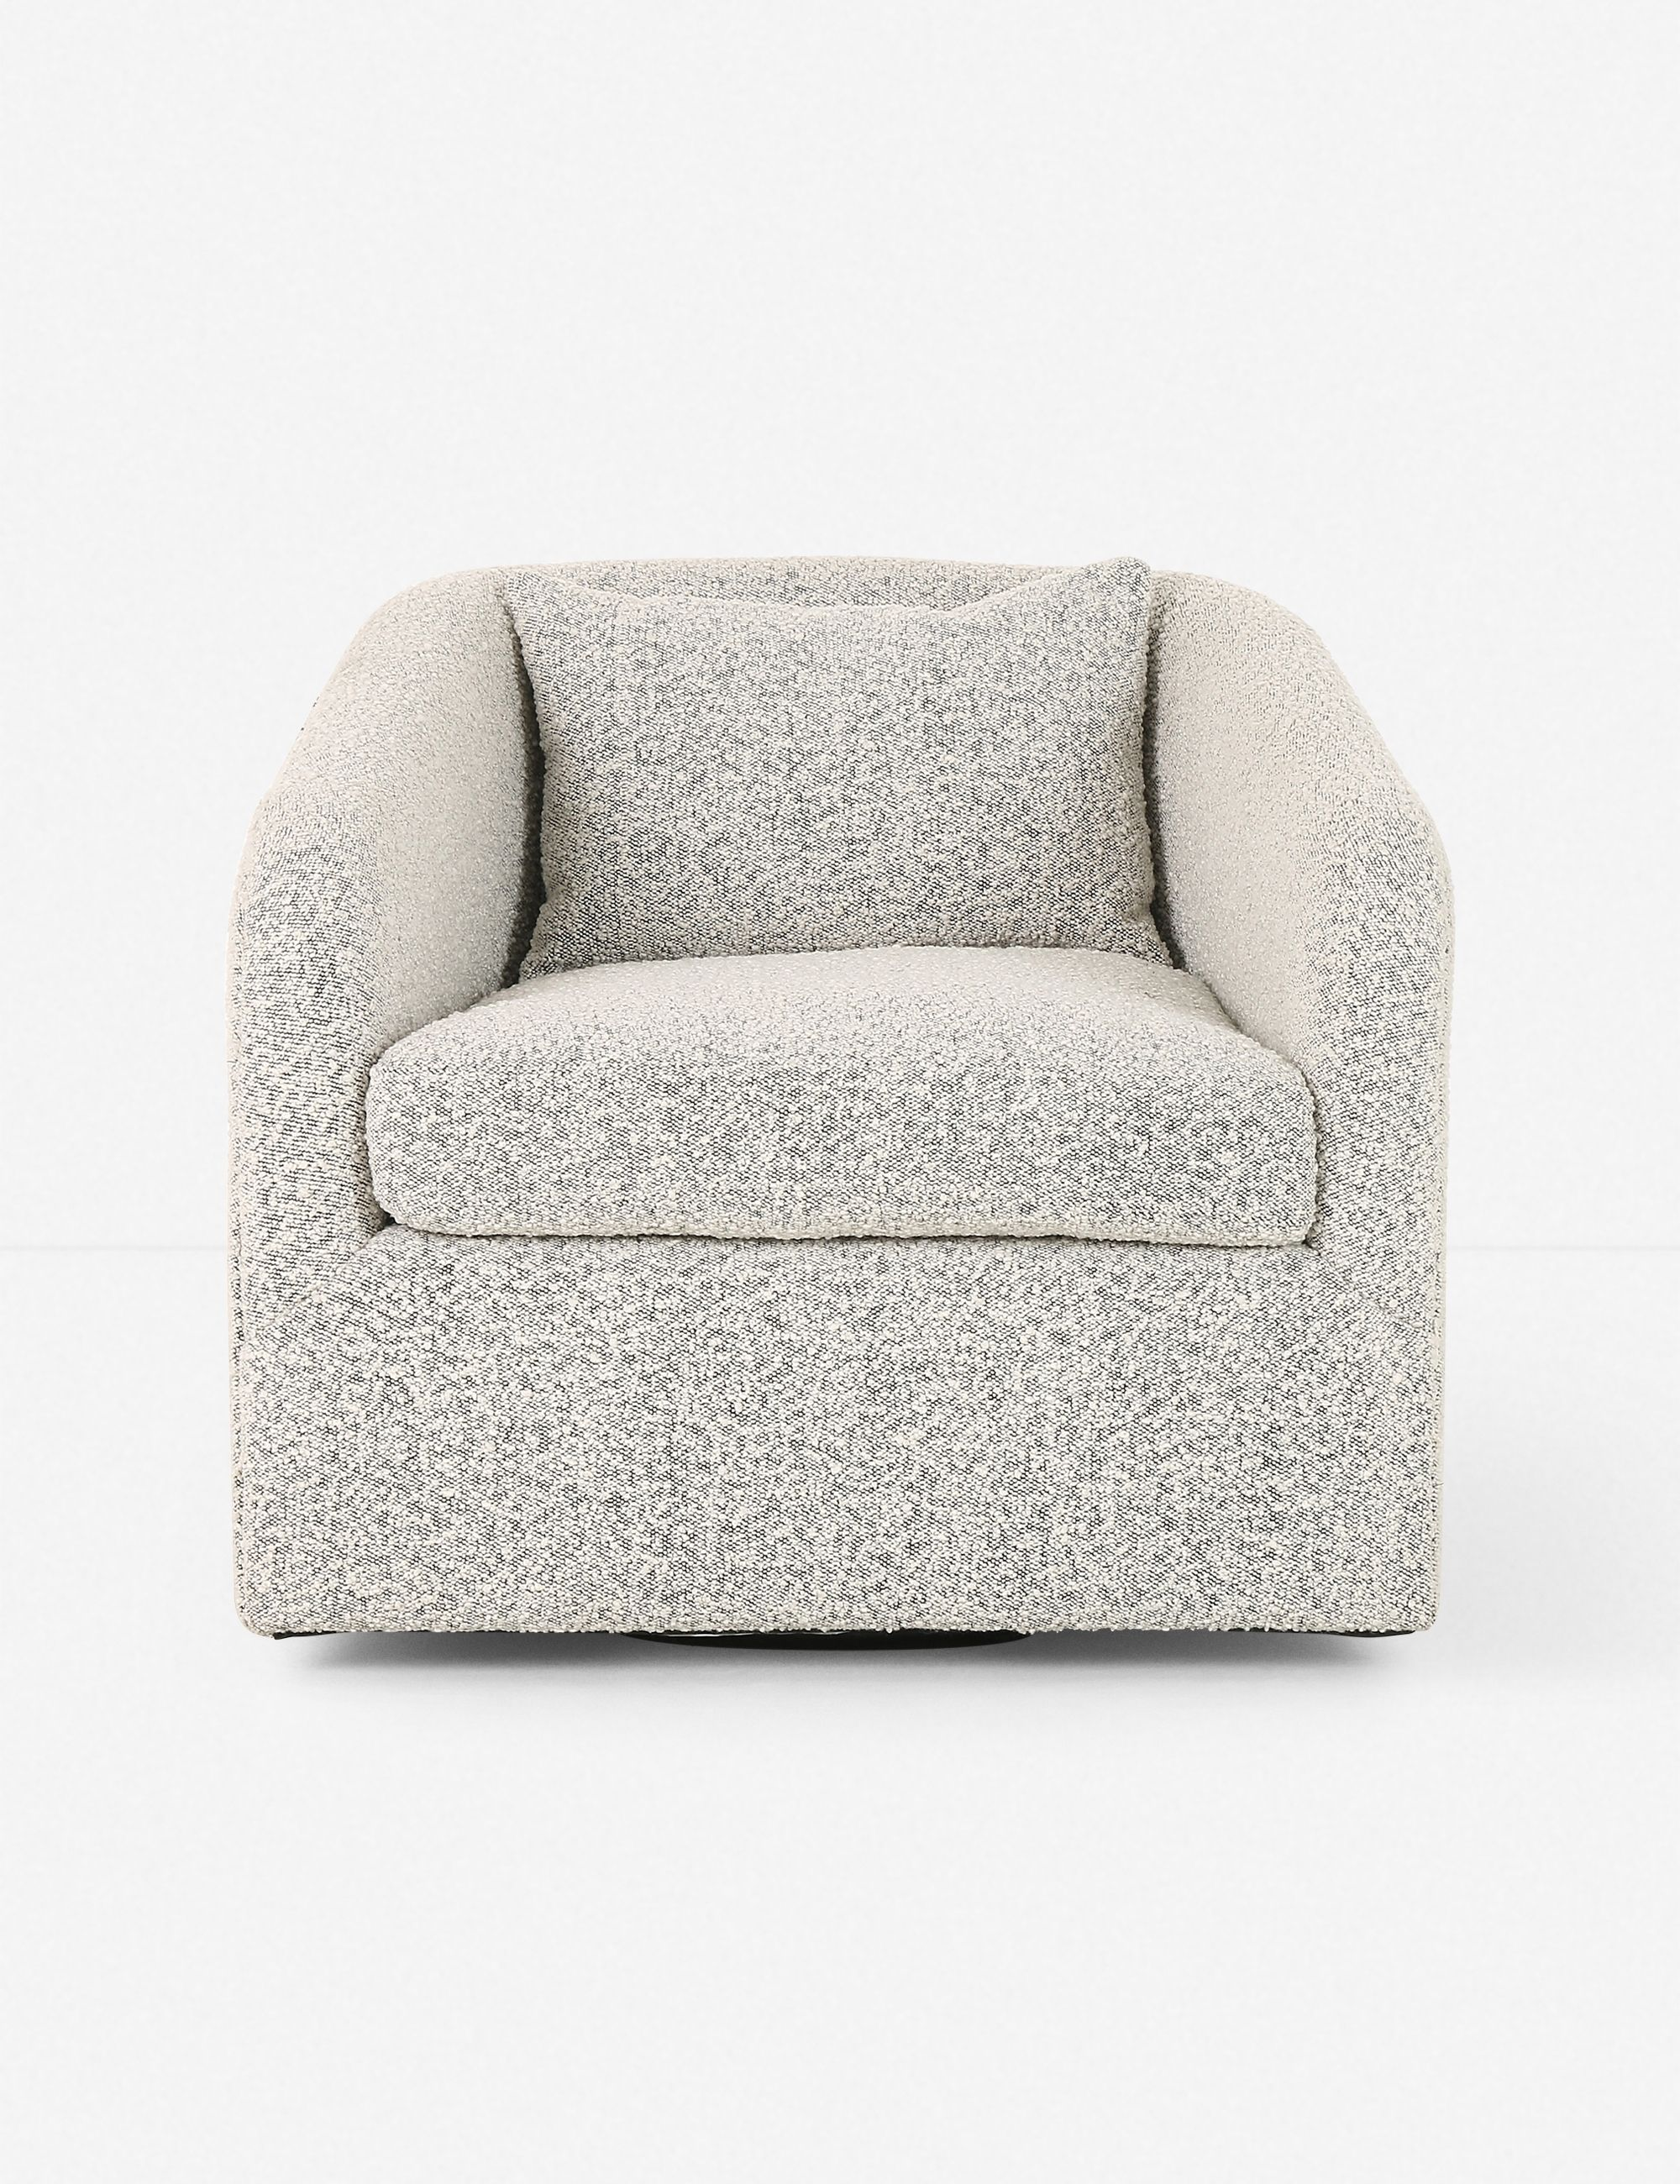 Ren Swivel Chair Knoll Domino With Images Swivel Chair